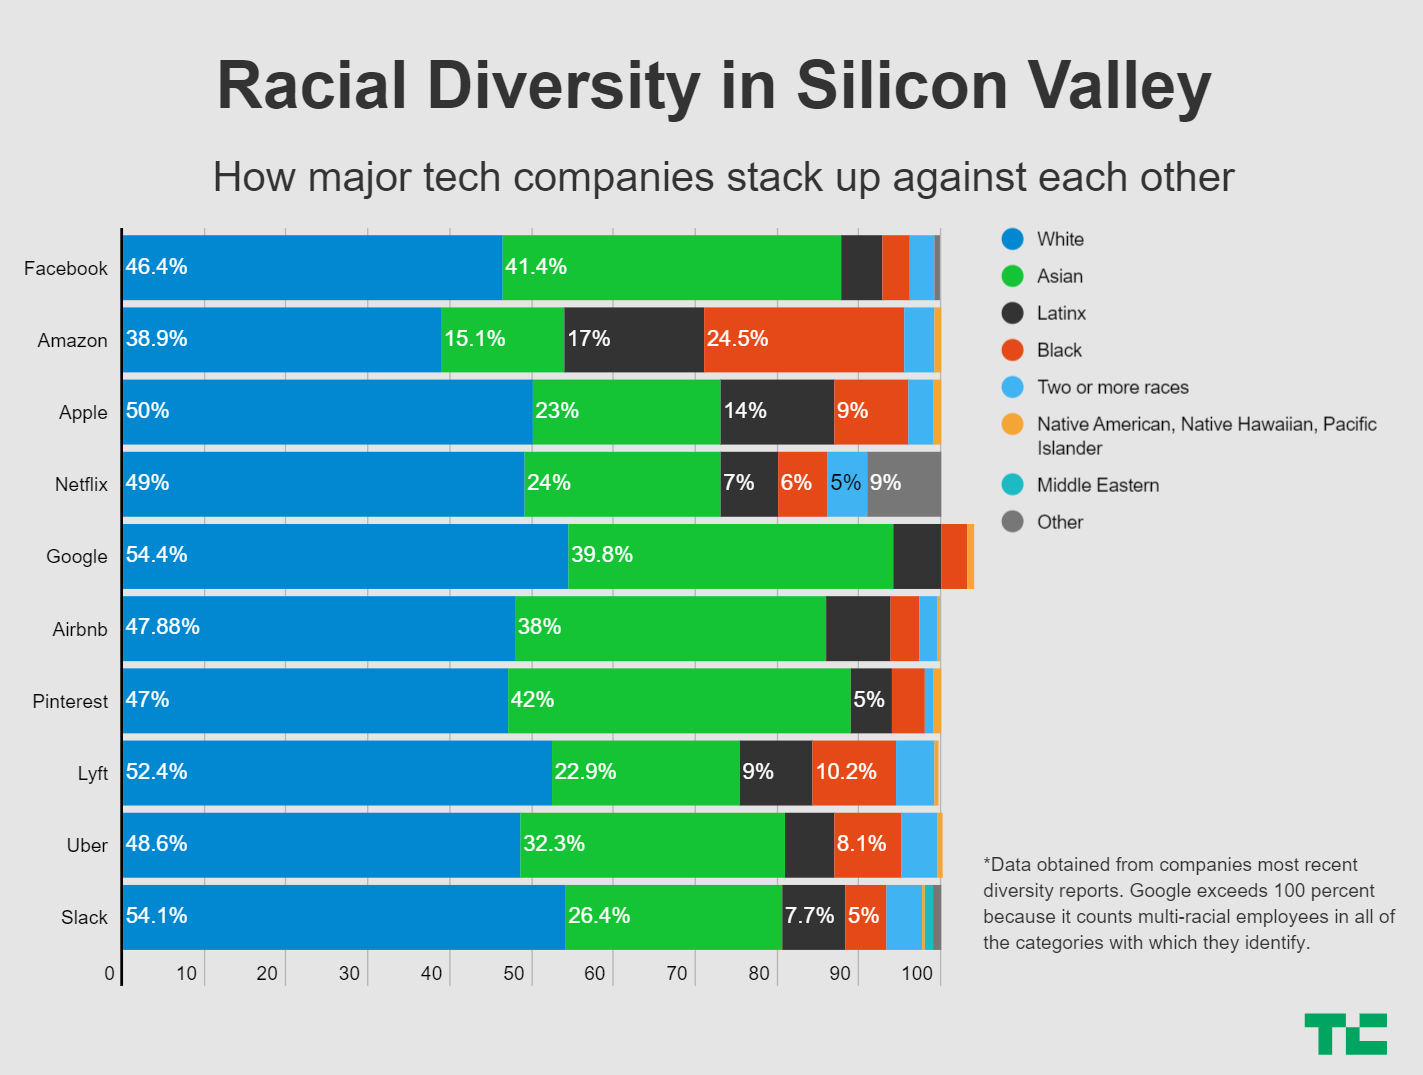 diversidad racial en sillicon valley